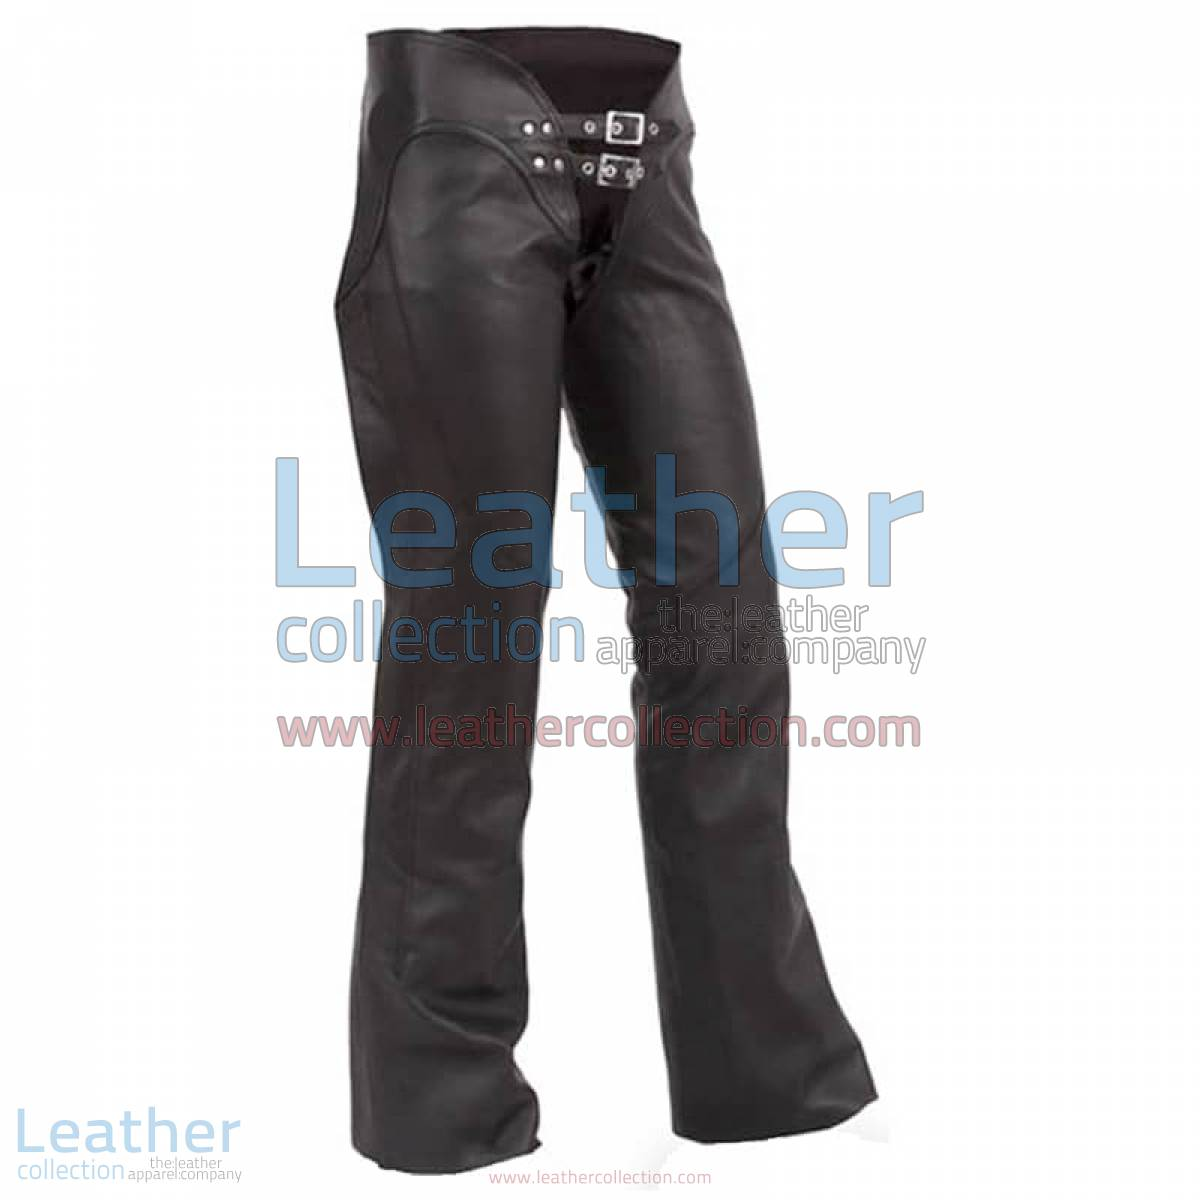 Double Belted Ladies Leather Chaps | ladies leather chaps